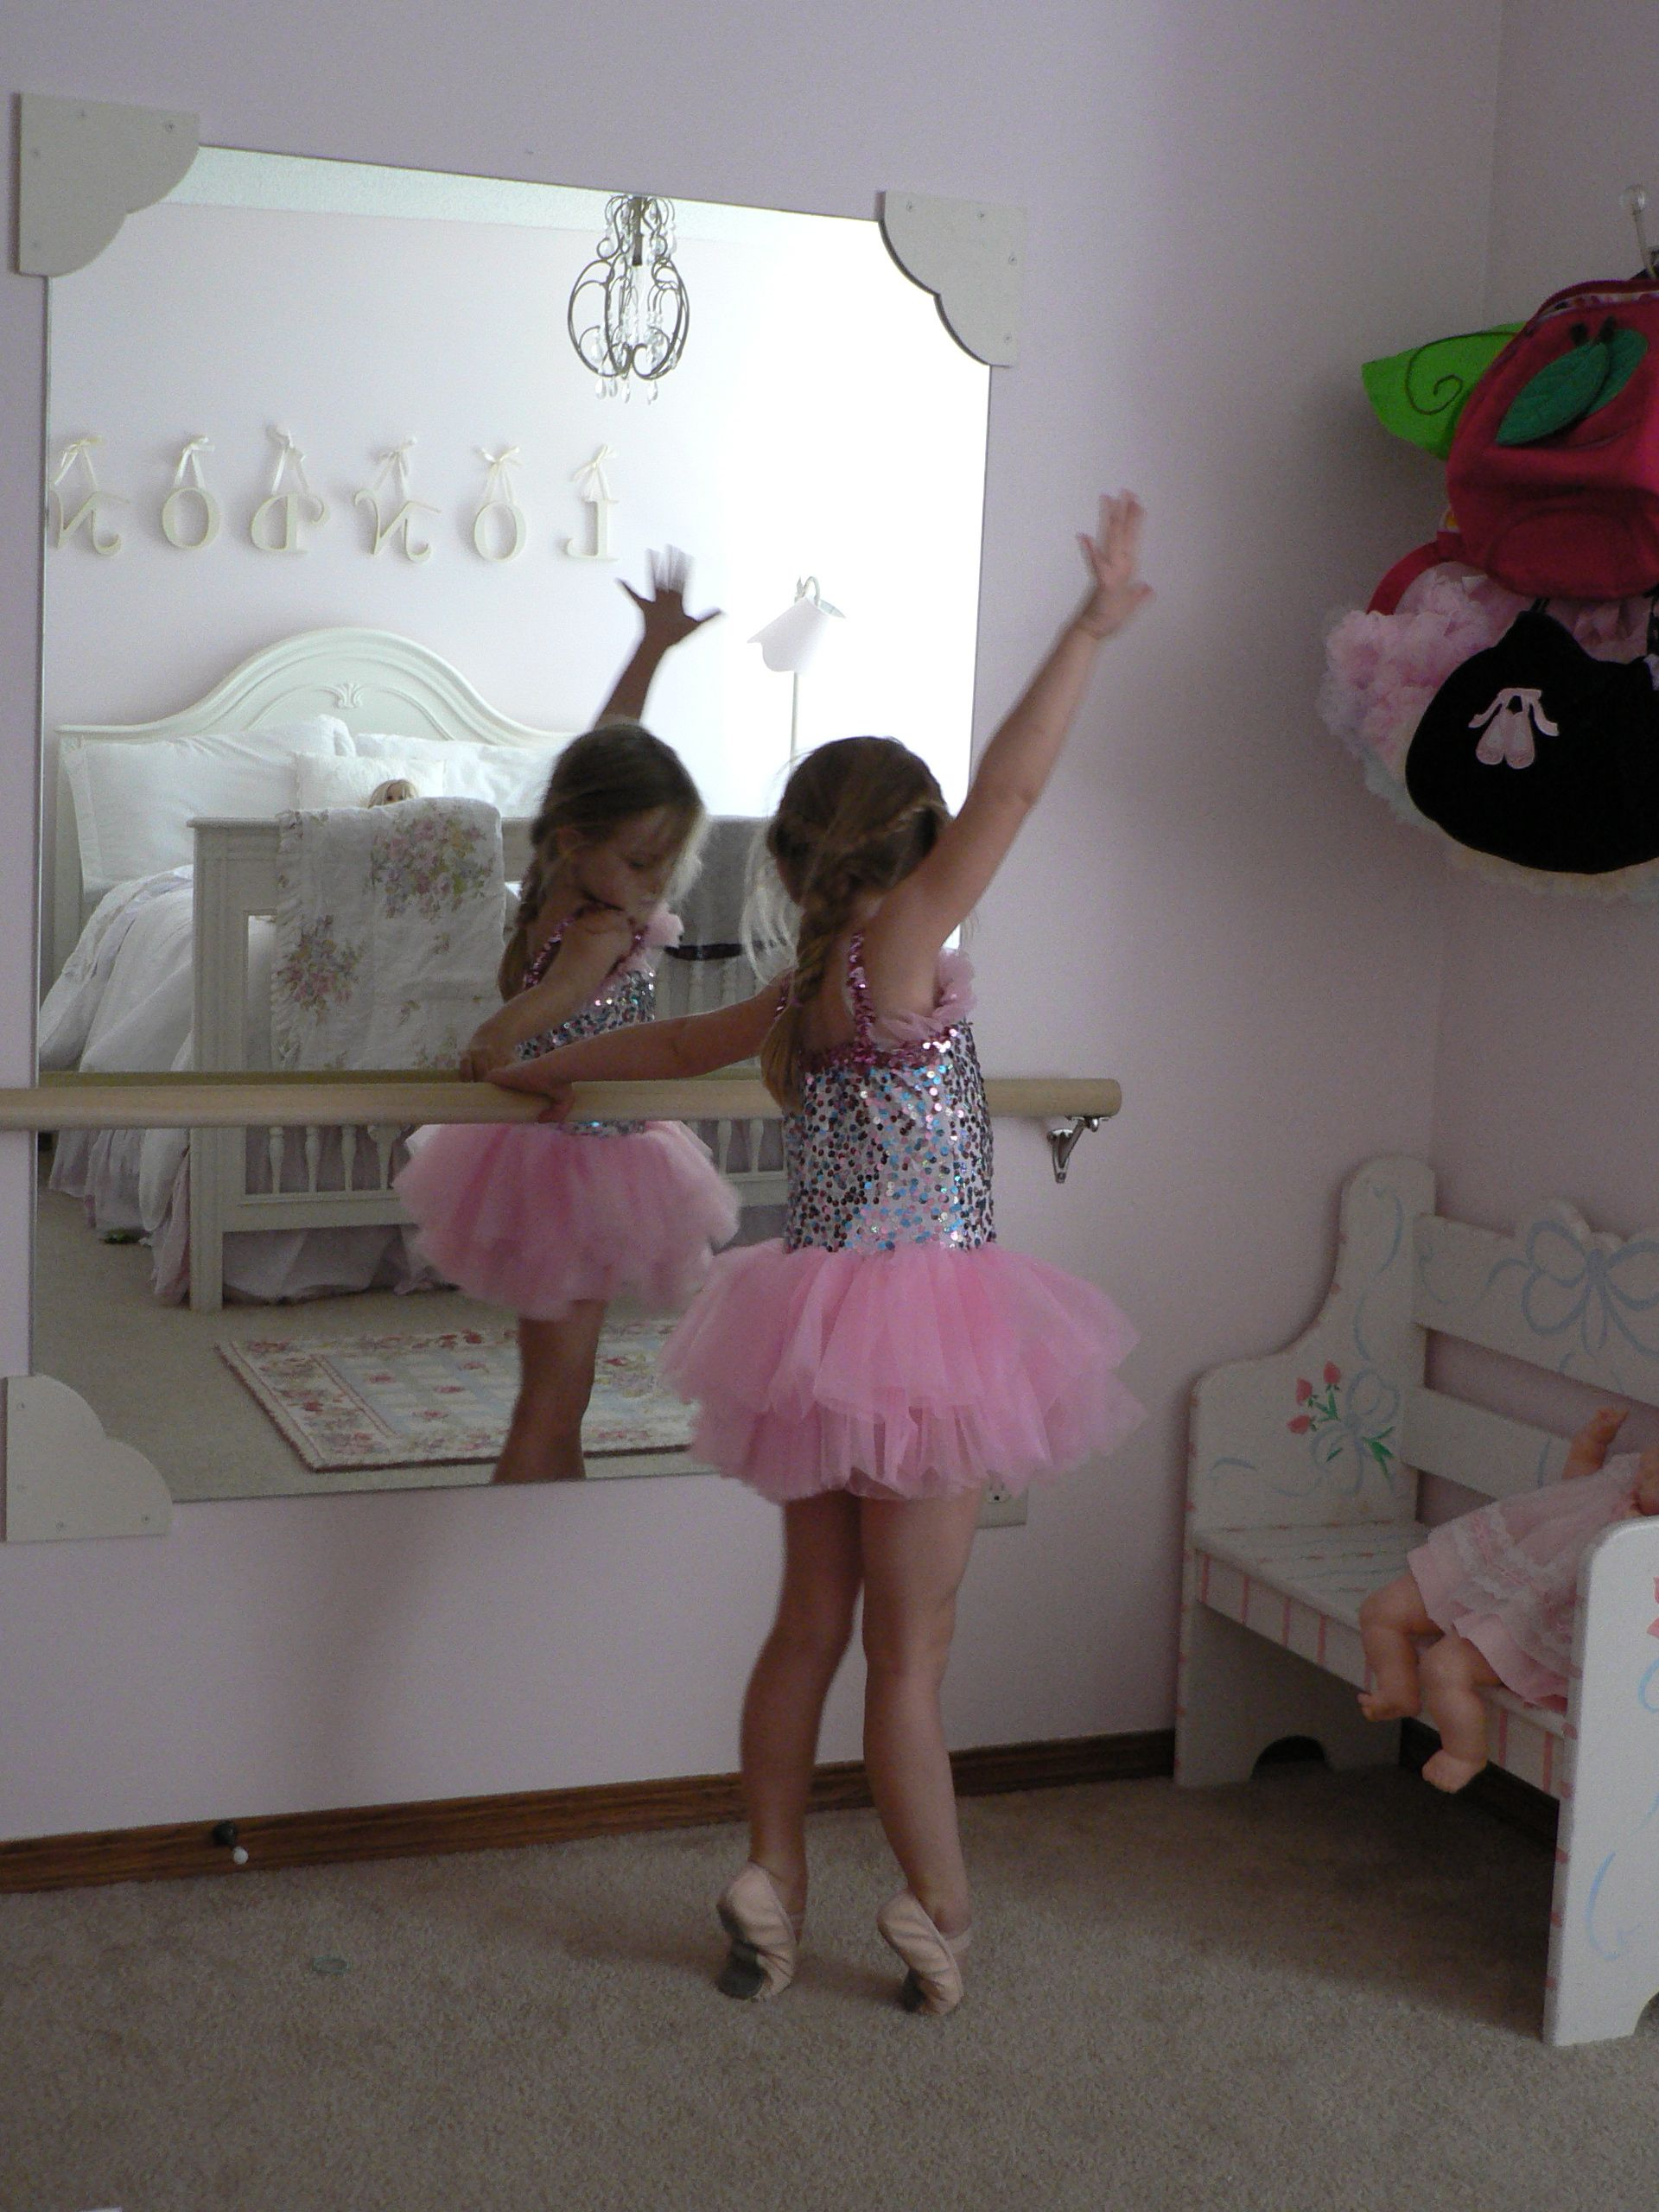 Chambre Danseuse Etoile dedans ballet mirror and bar cute idea! girls room must!! | caroline